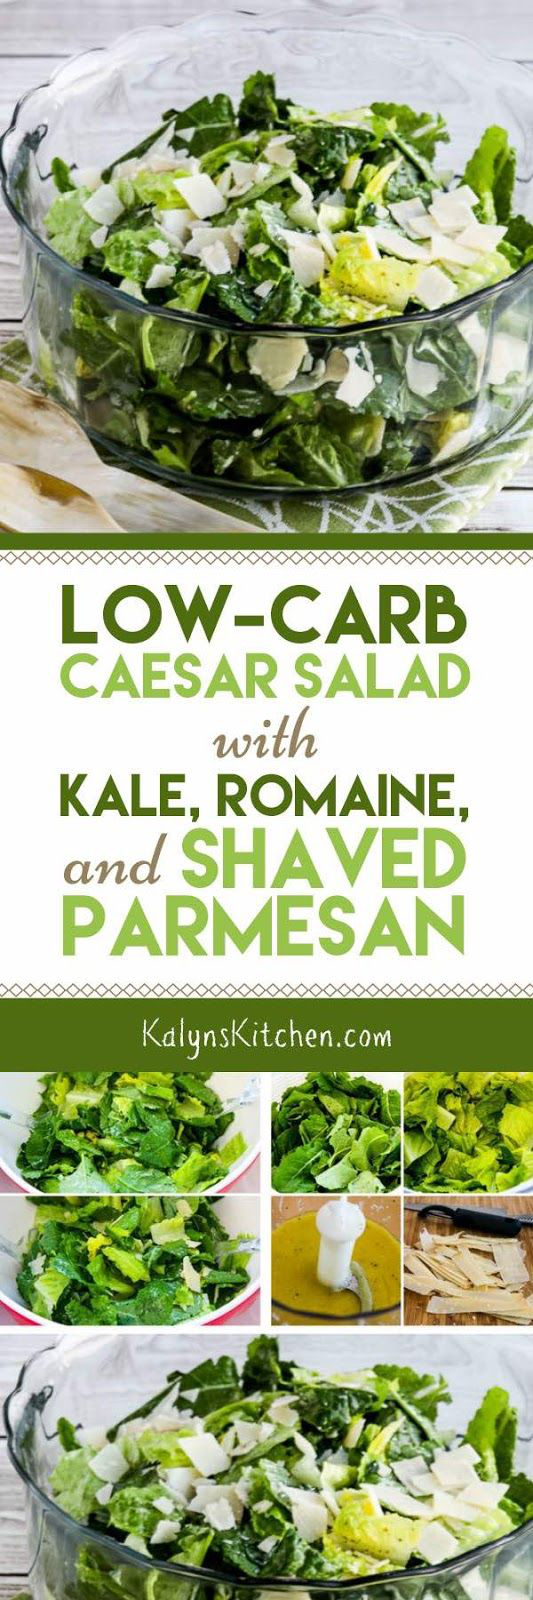 I never get tired of this Low-Carb Caesar Salad with Kale, Romaine, and Shaved Parmesan, and this amazing salad is also Keto, low-glycemic, gluten-free, and can be South Beach Diet friendly if you don